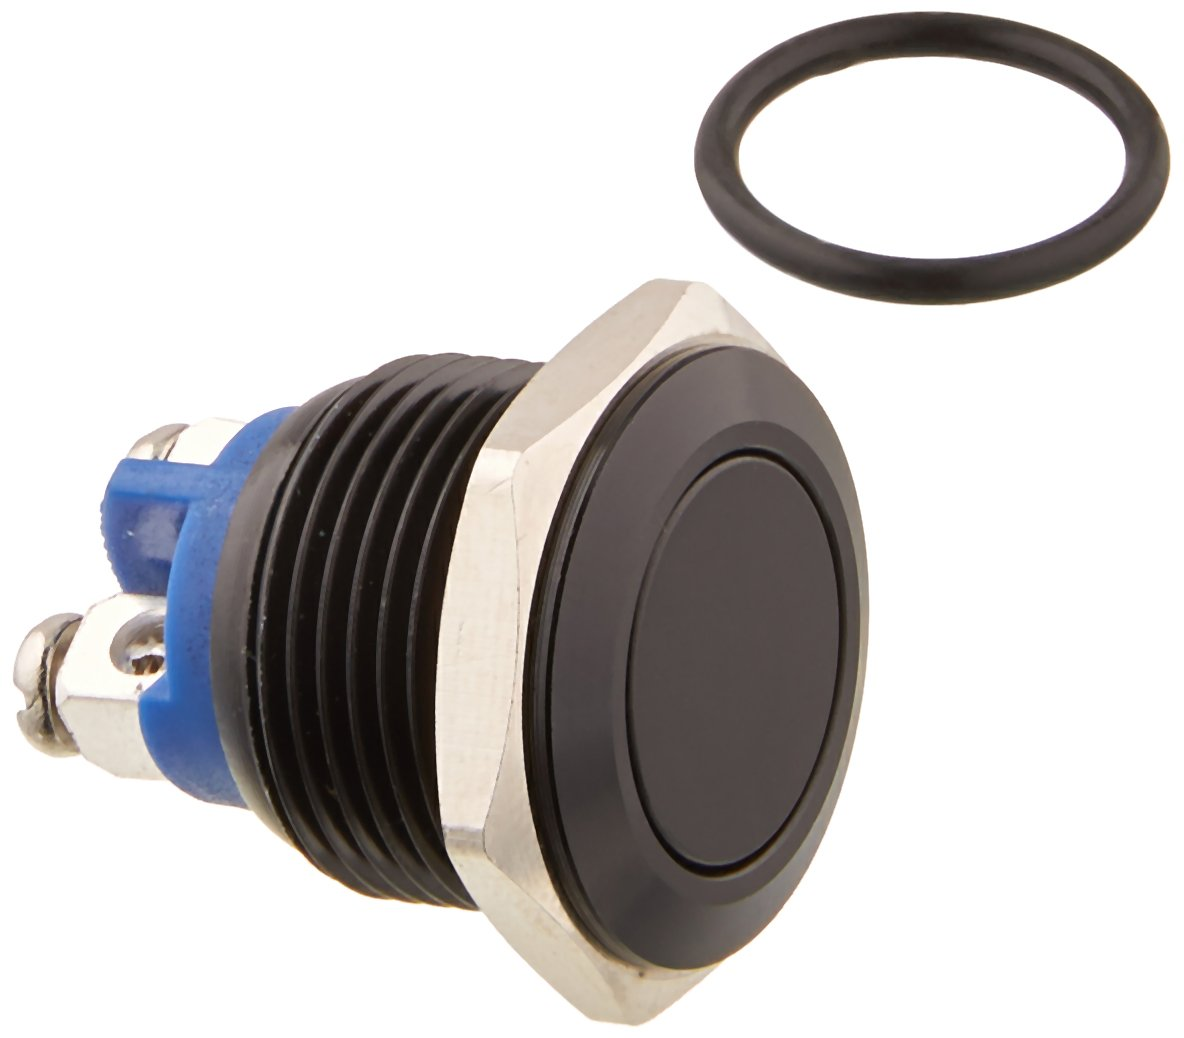 Best Rated In Automotive Replacement Pushbutton Switches Is Using A Switch To Power Ignition And Momentary Start Yakamoz 16mm 5 8 Metal Push Button 3a 250v Ac Spst